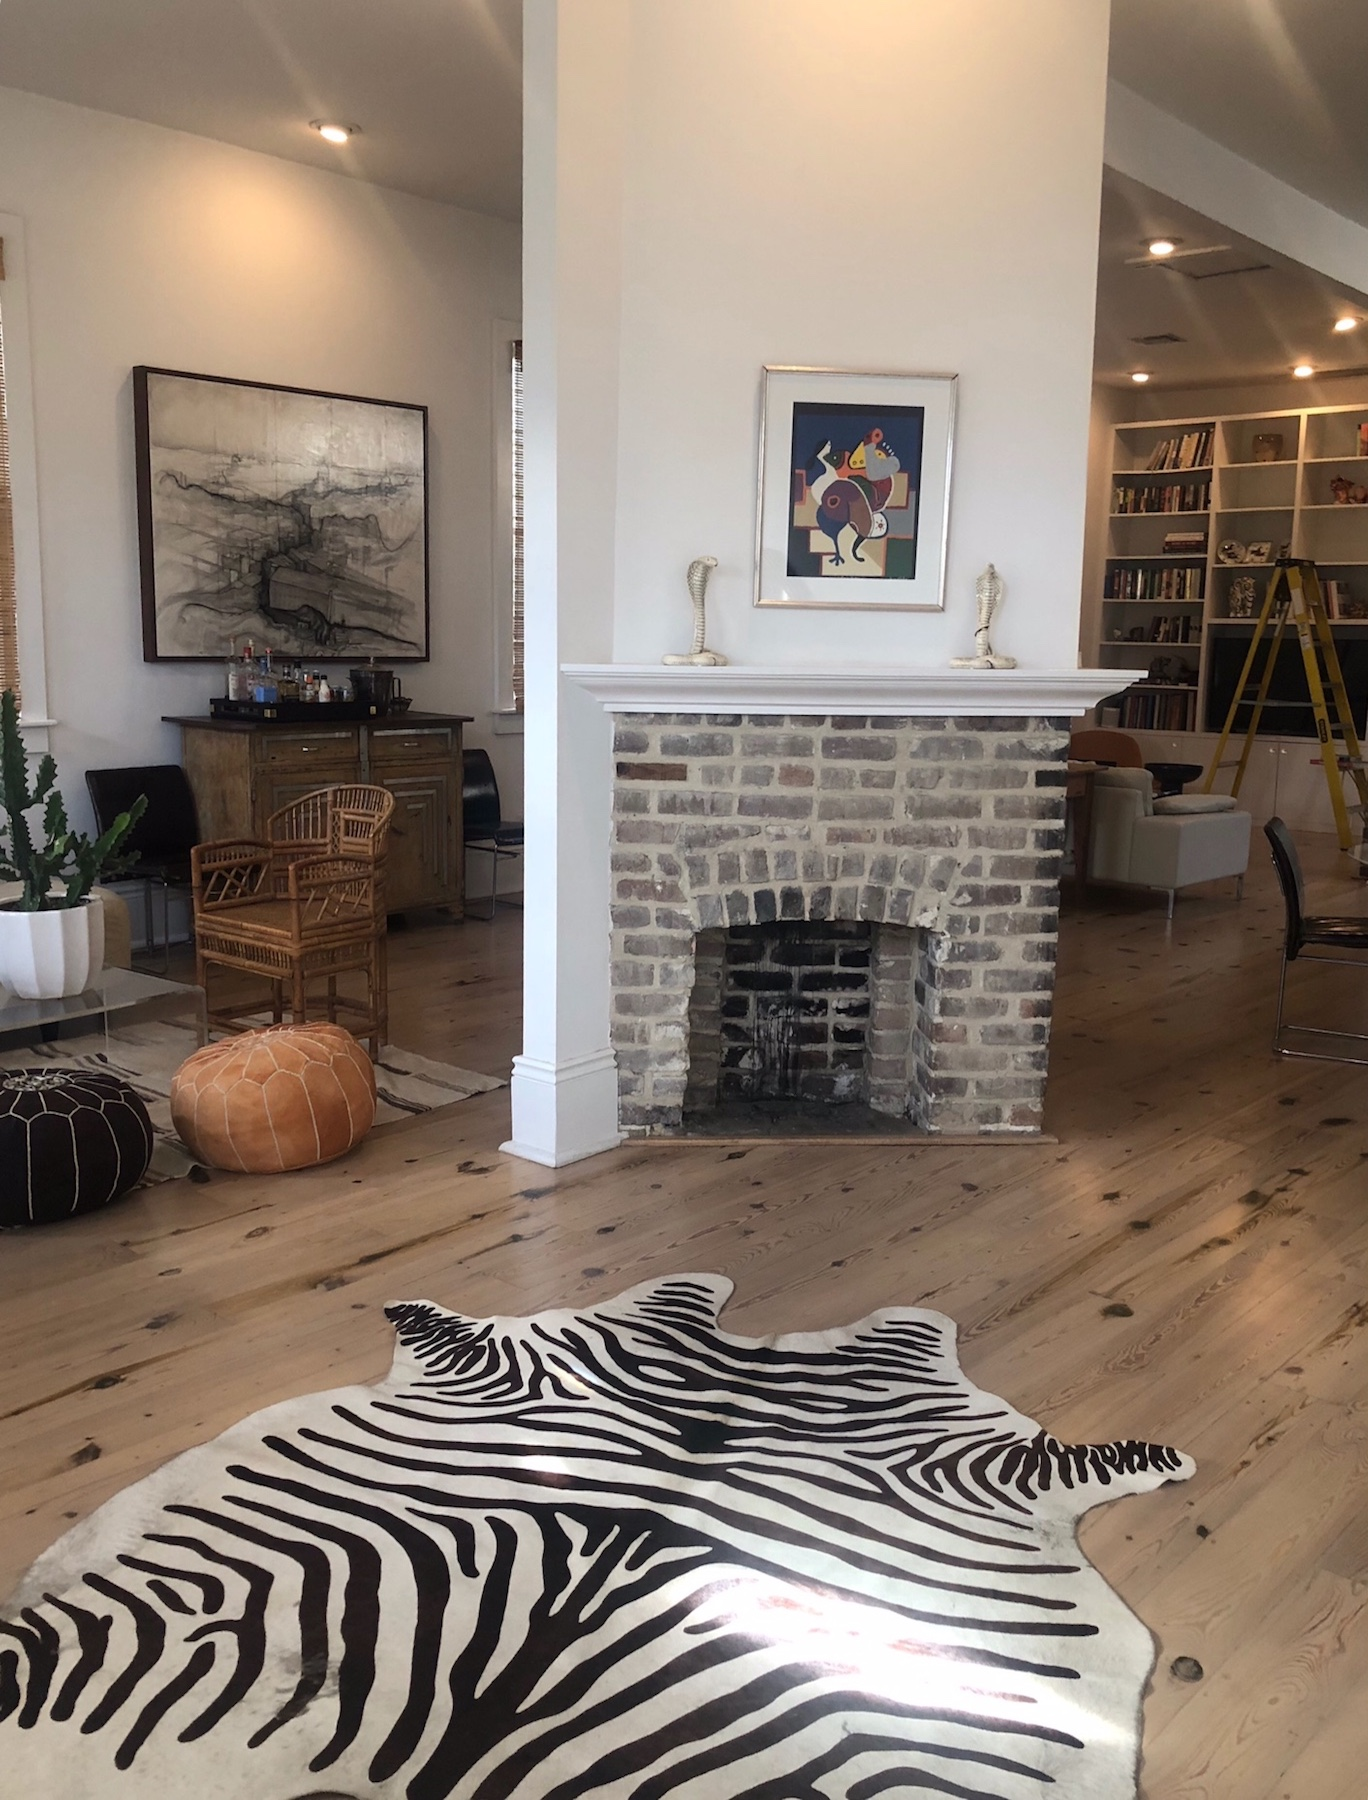 A photo of a living room with refinished hardwood flooring. It is bleached light with dark knots.